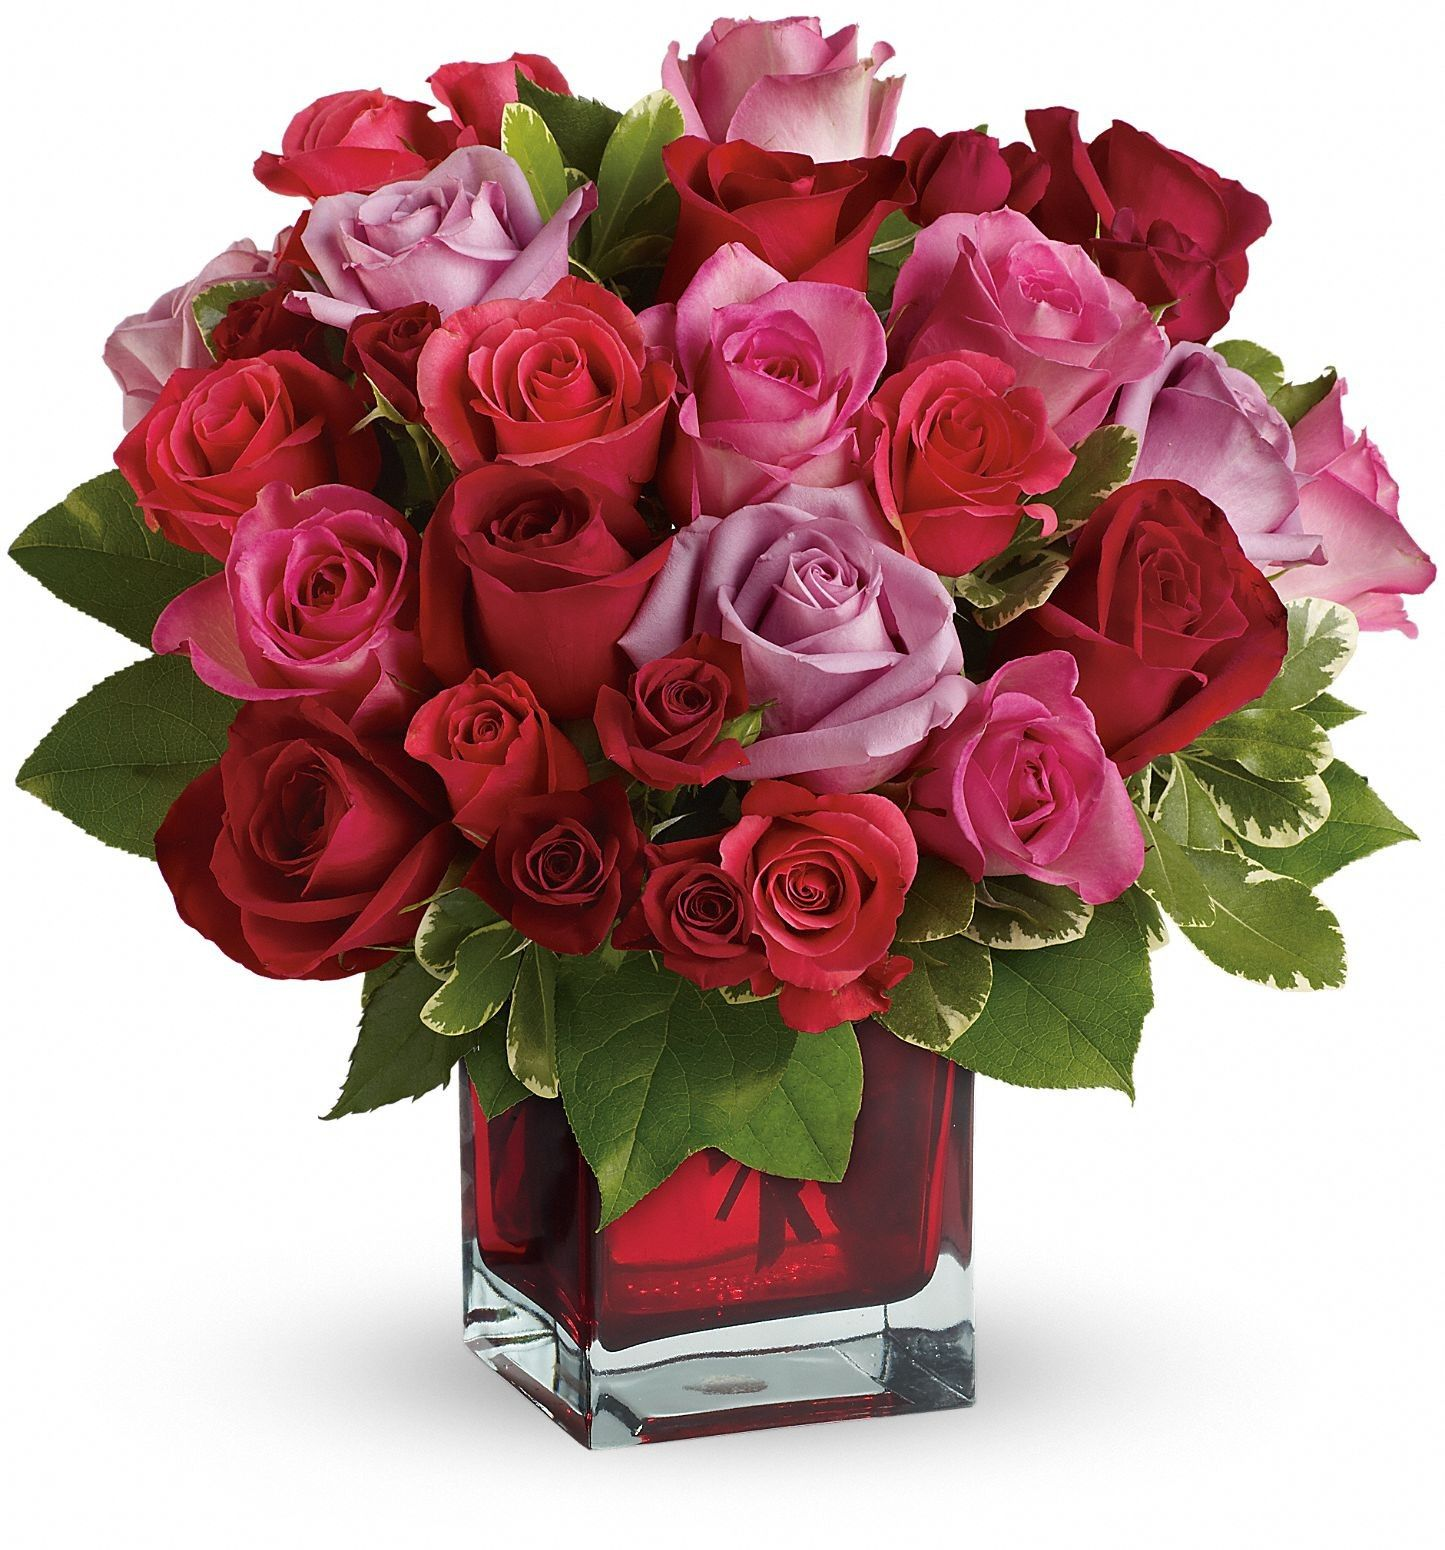 Birthday Flowers Roses Beautiful for Love You Download free